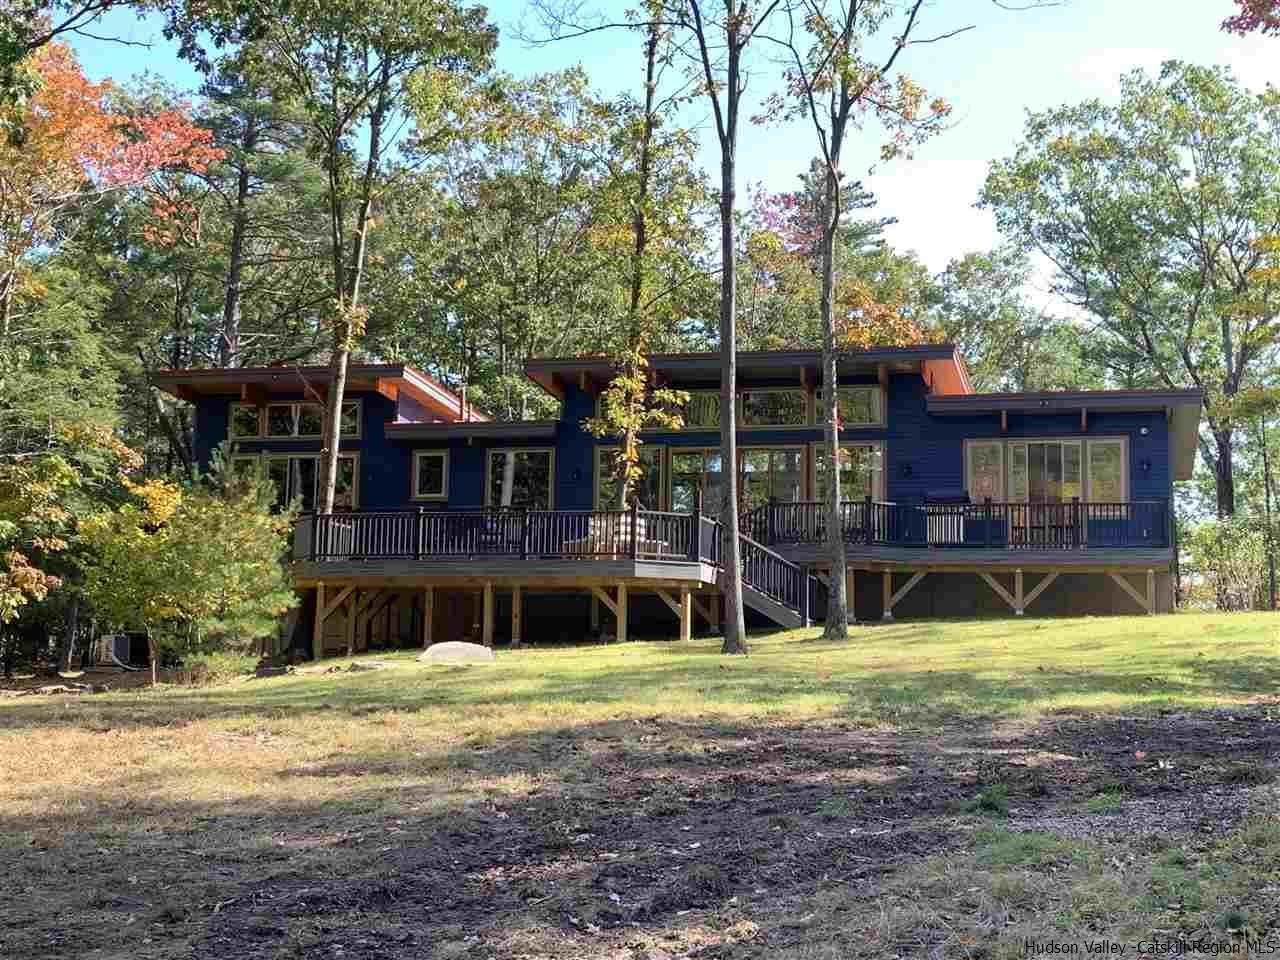 Single Family Homes for Sale at 2 RAYCLIFFE Drive Woodstock, New York 12498 United States